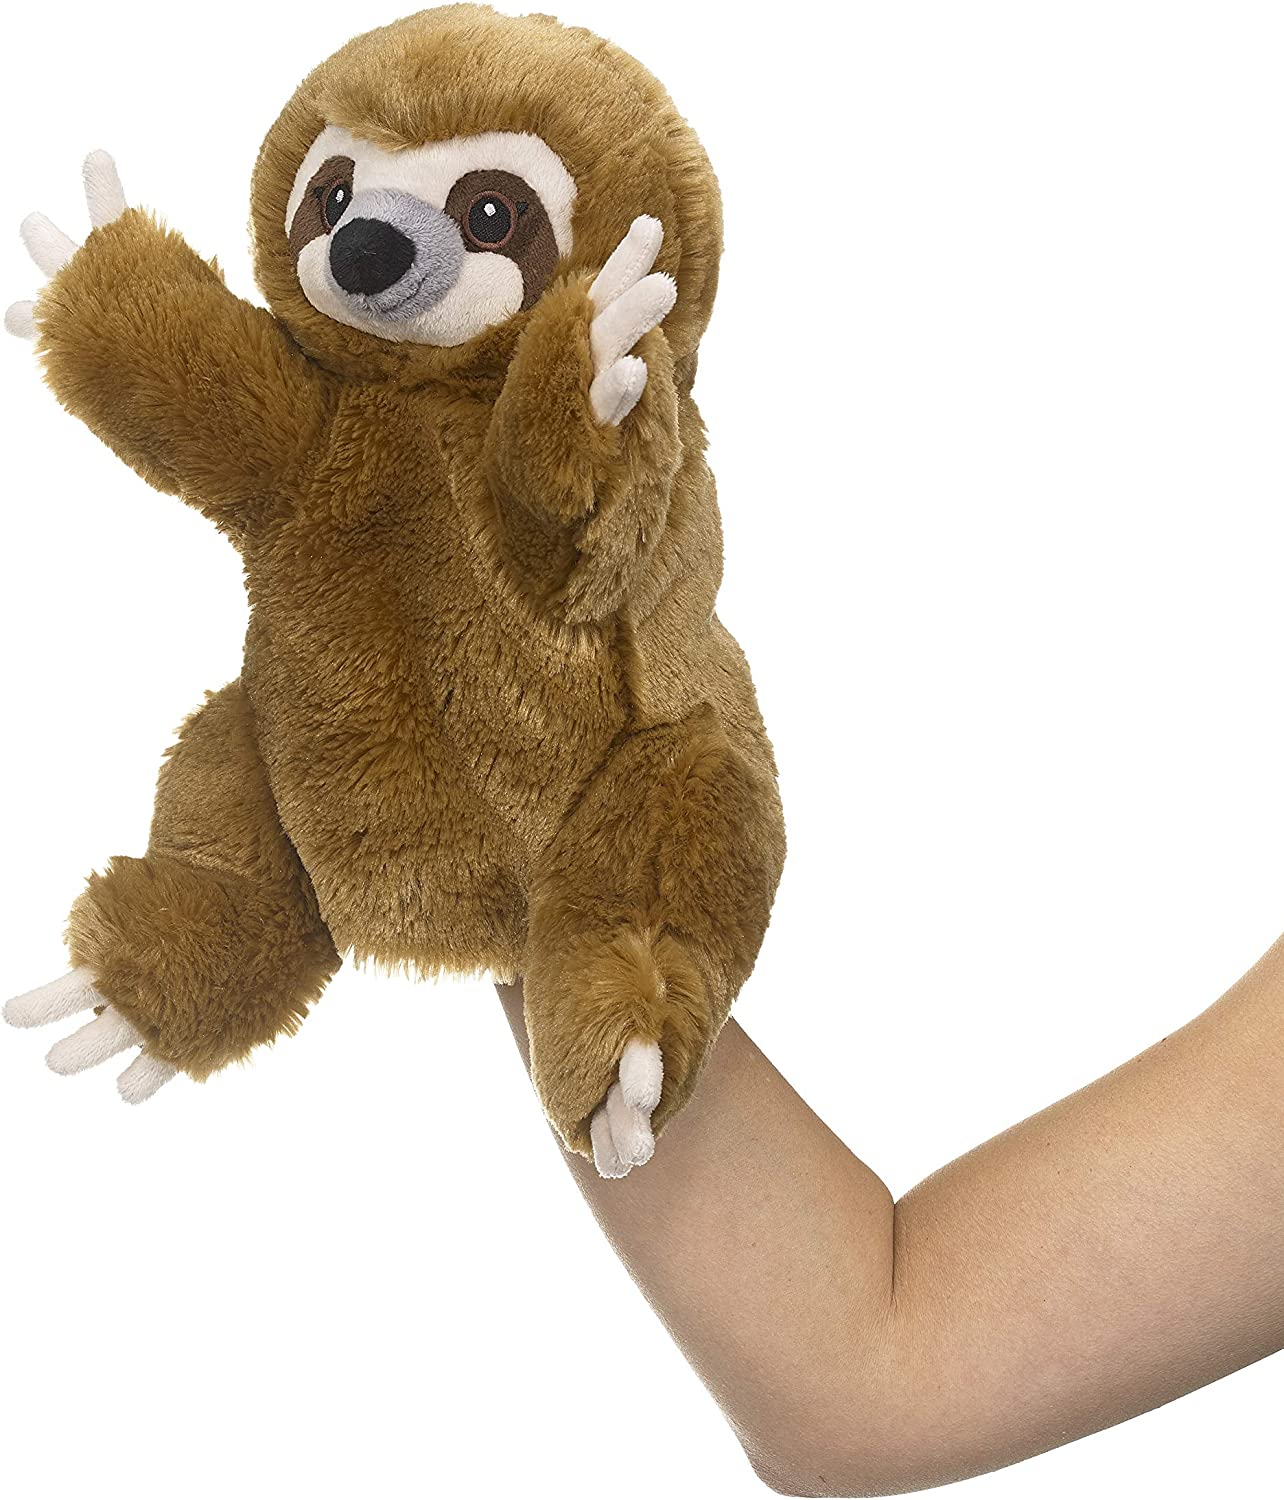 """Eco Pals Sloth Puppet by Wildlife Artists, Stuffed Animal Plush Puppet Toy 11"""", Eco-Friendly, Embroidered Eyes and Noses, Made from 100% Post-Consumer and Recycled Materials"""